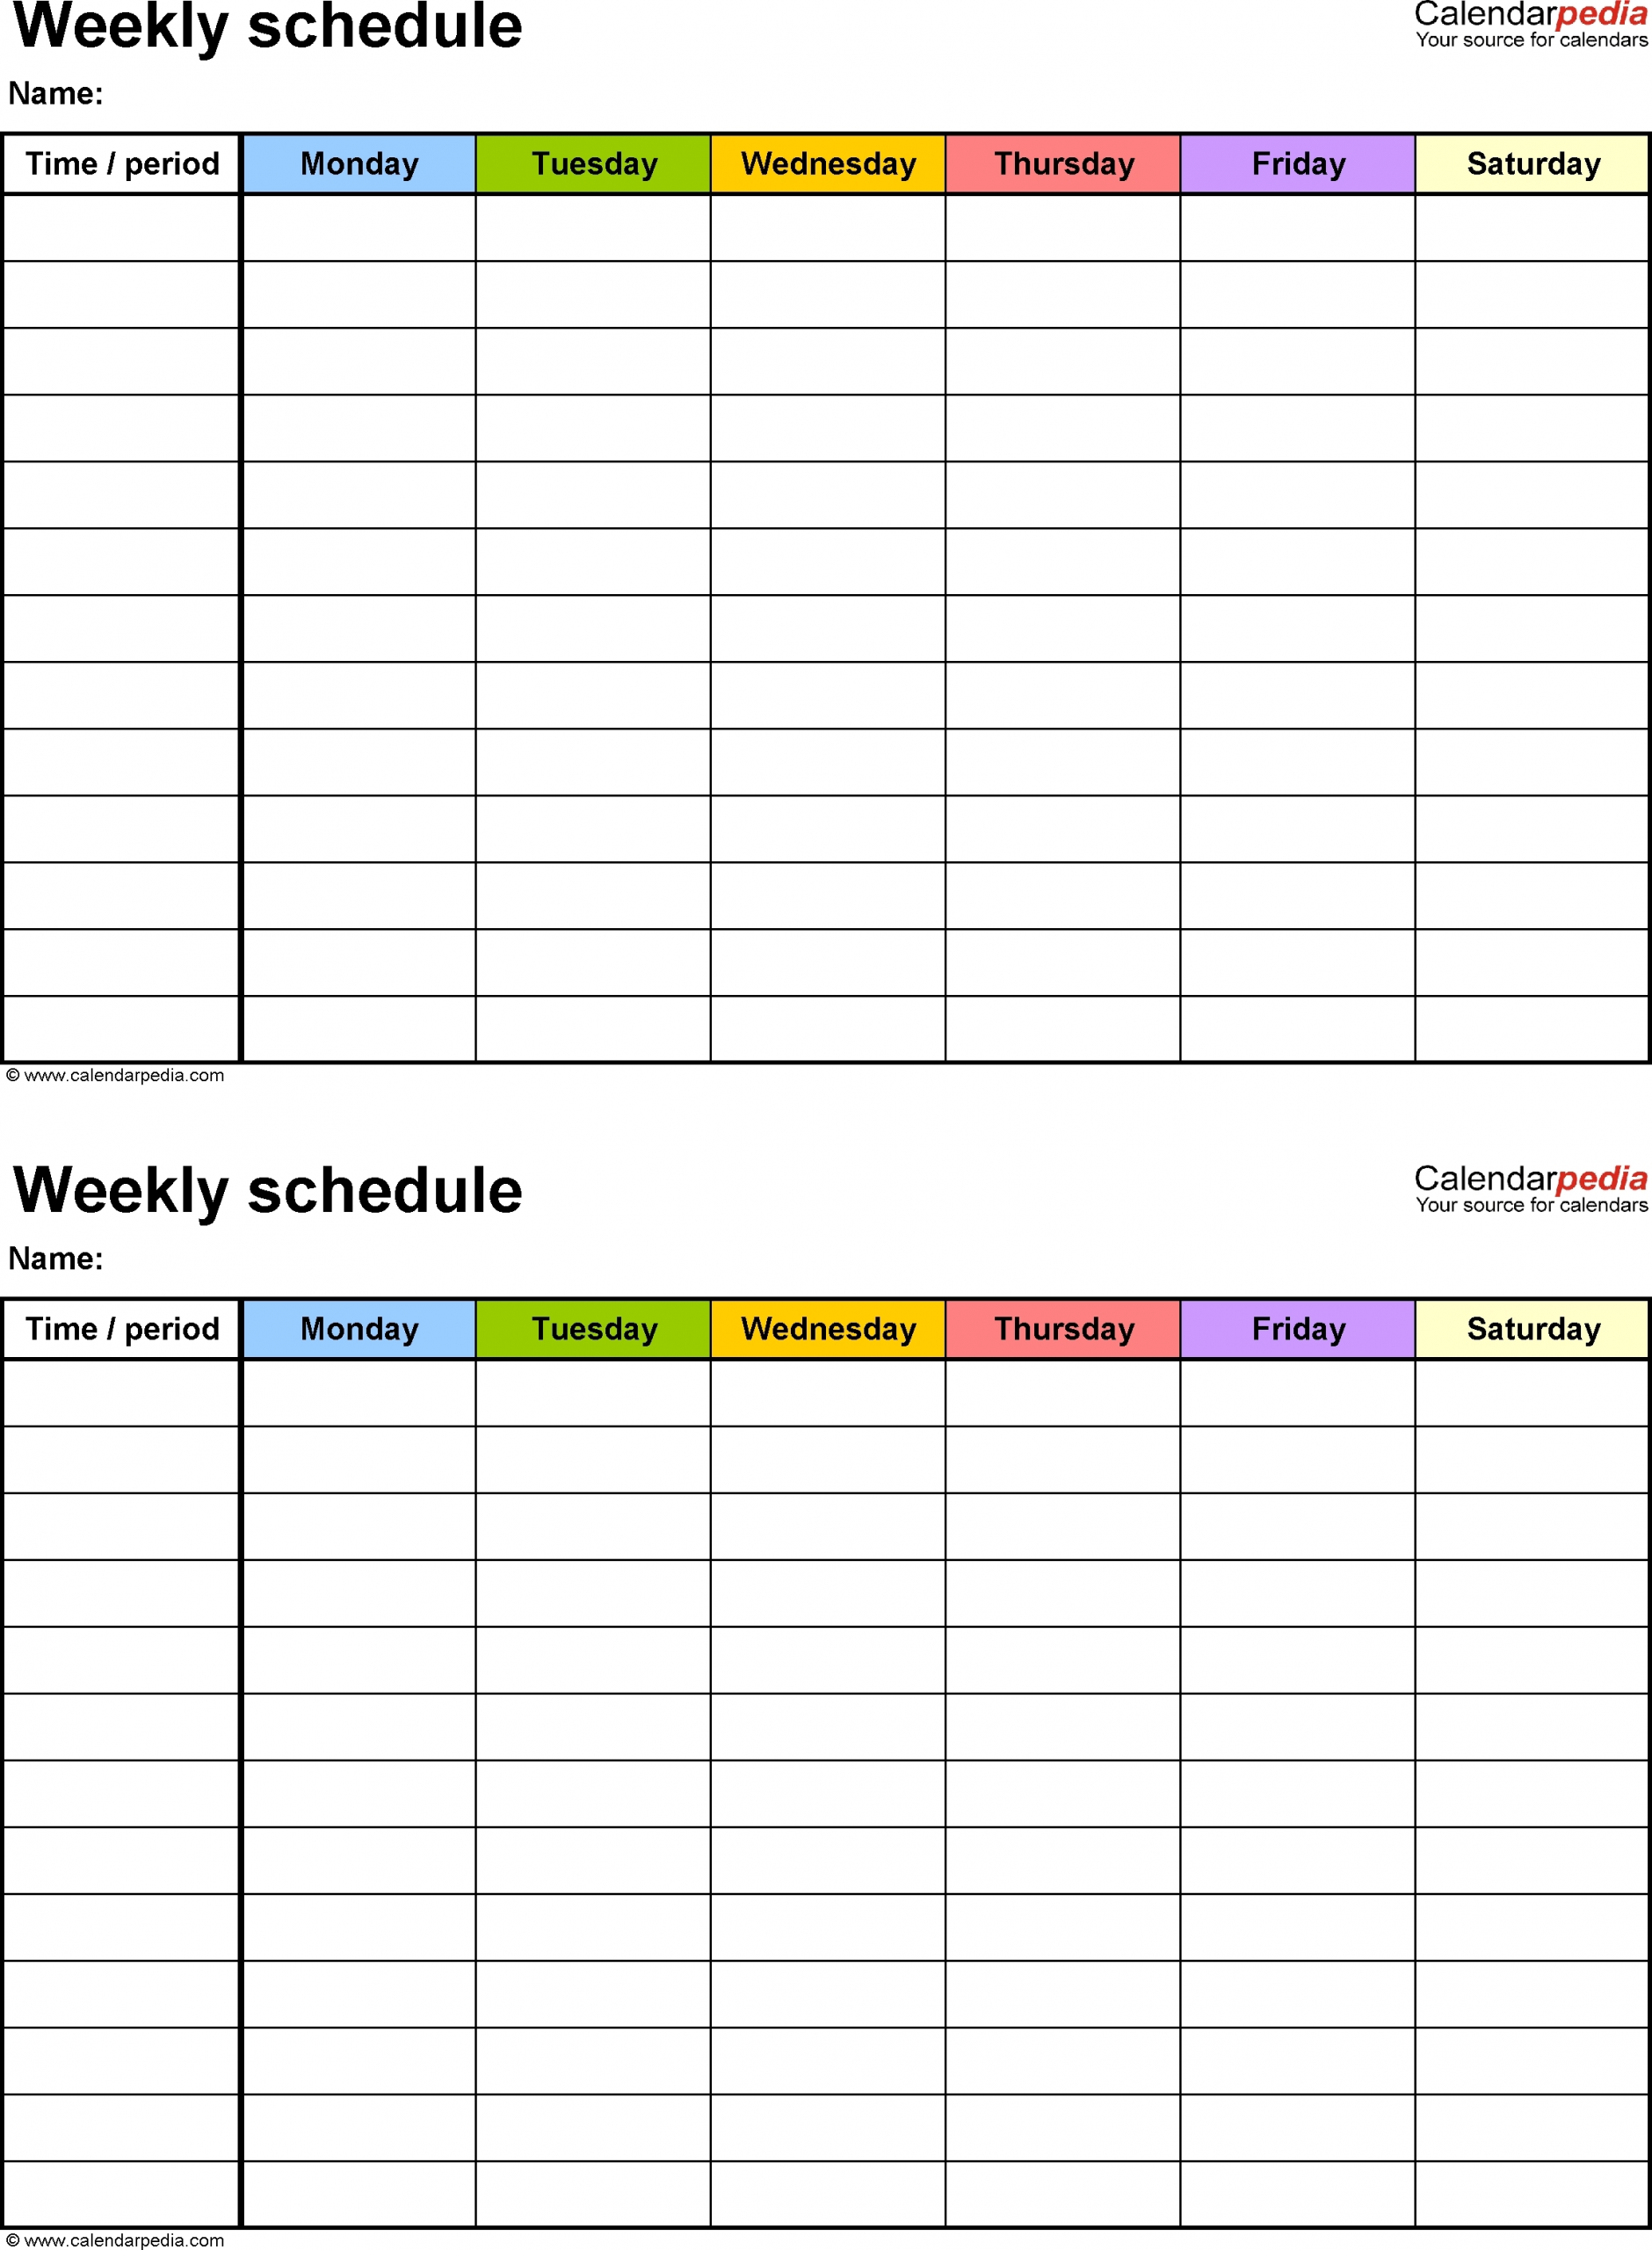 5 Day Weekly Timetable Blank 6 Periods - Calendar Inspiration Design